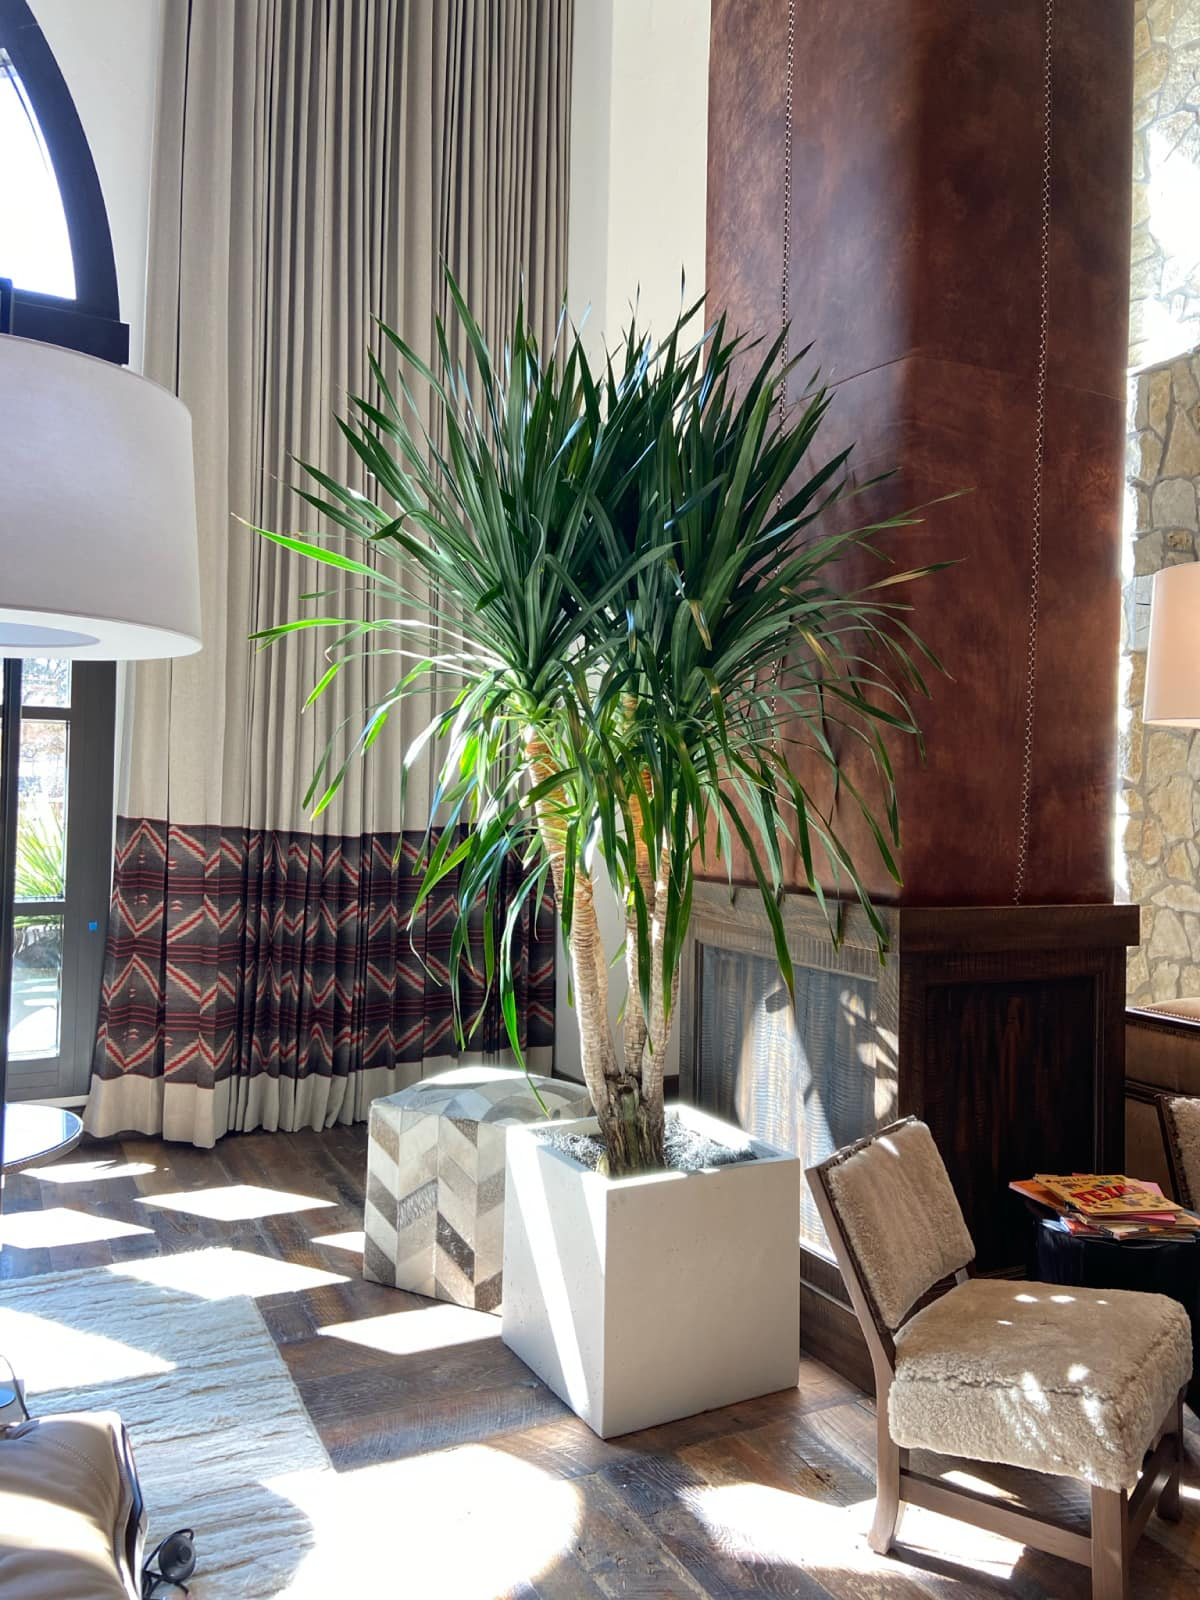 Hotel Drover - Plant Design by Natura